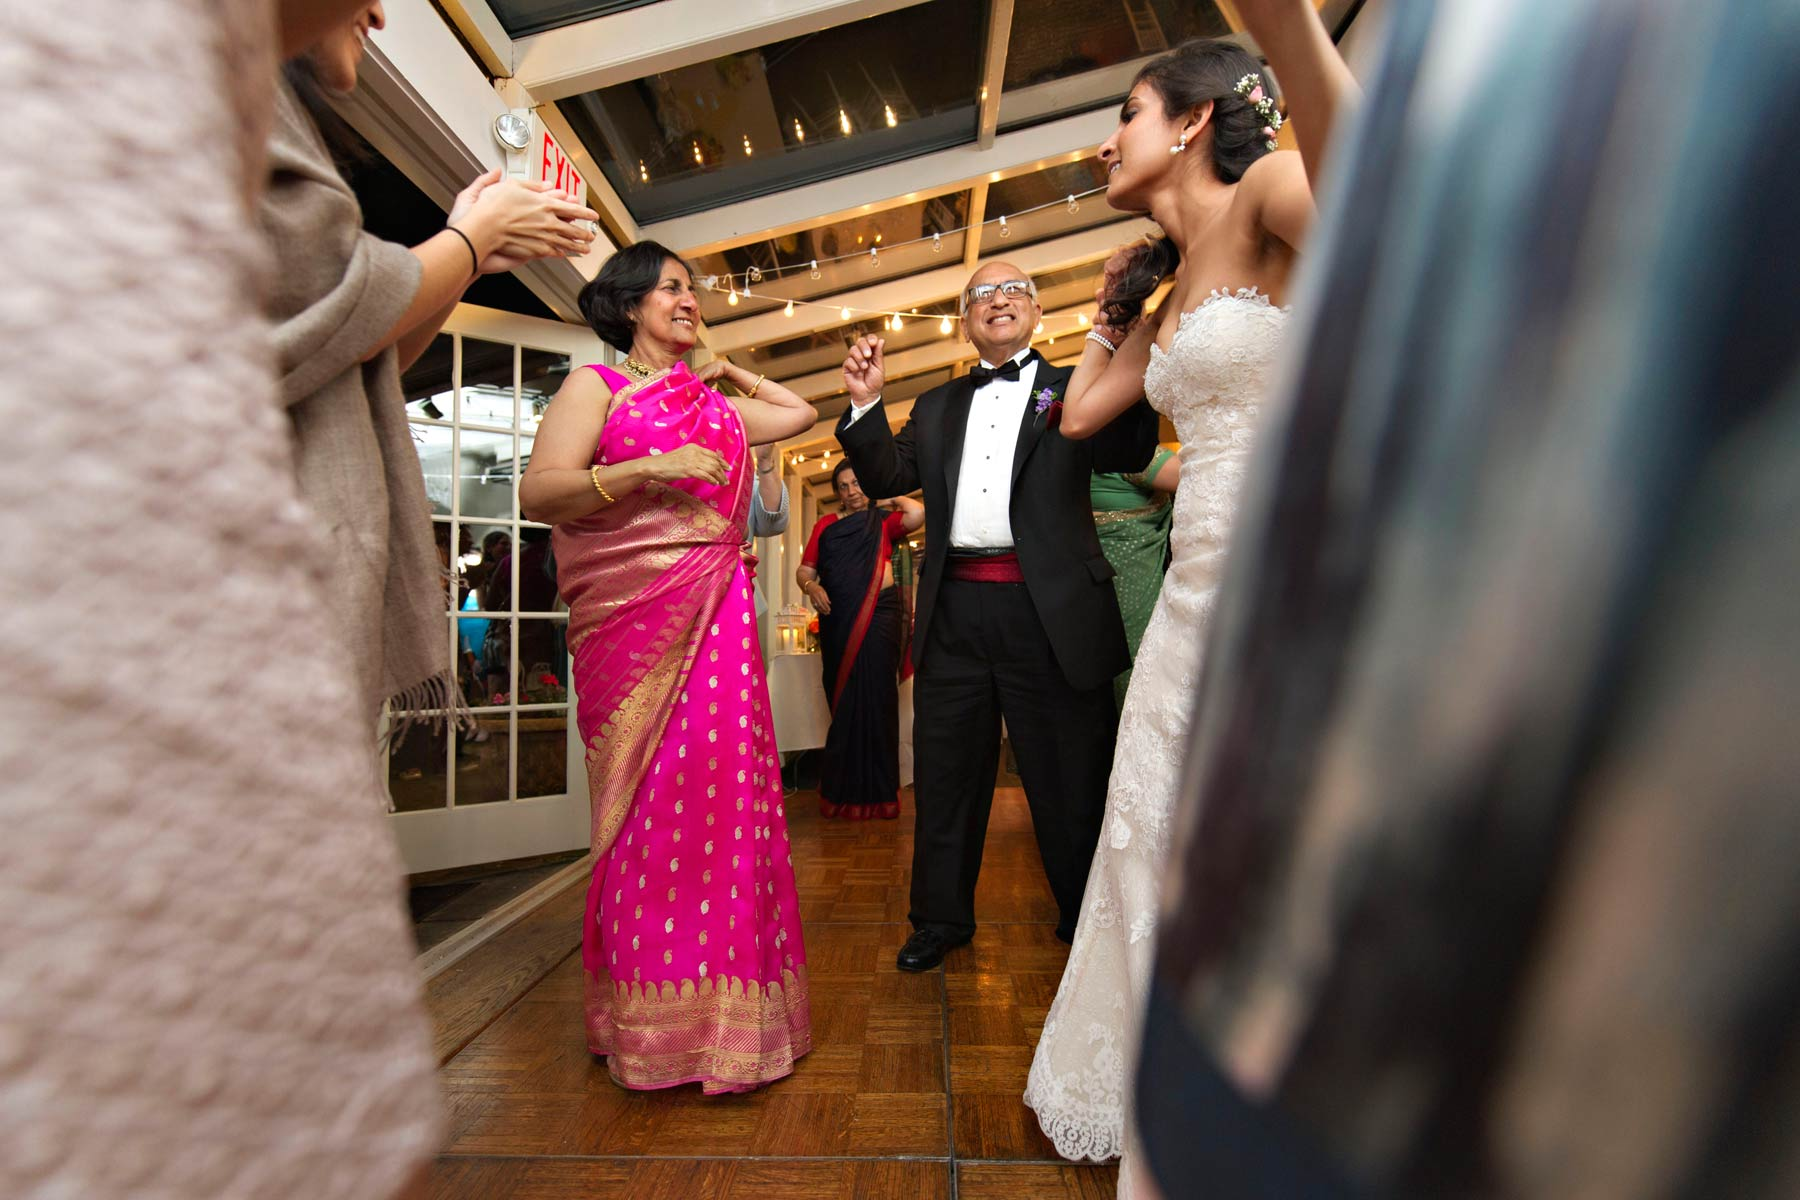 bride dances with her parents at wedding reception